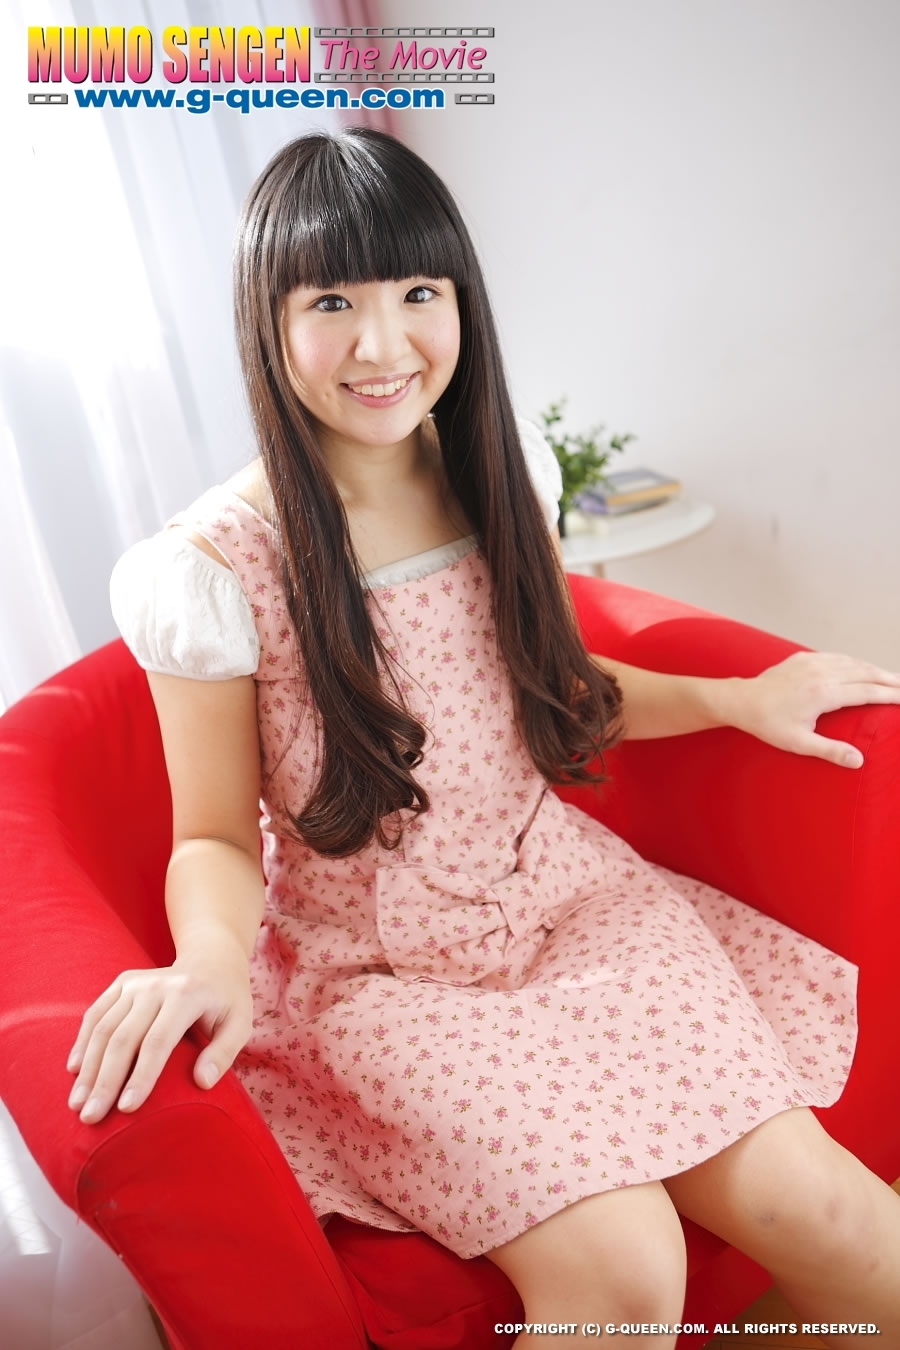 Pretty Japanese School Girl Posing On Red Armchair With Her Pussy Naked Xxxonxxx Pic